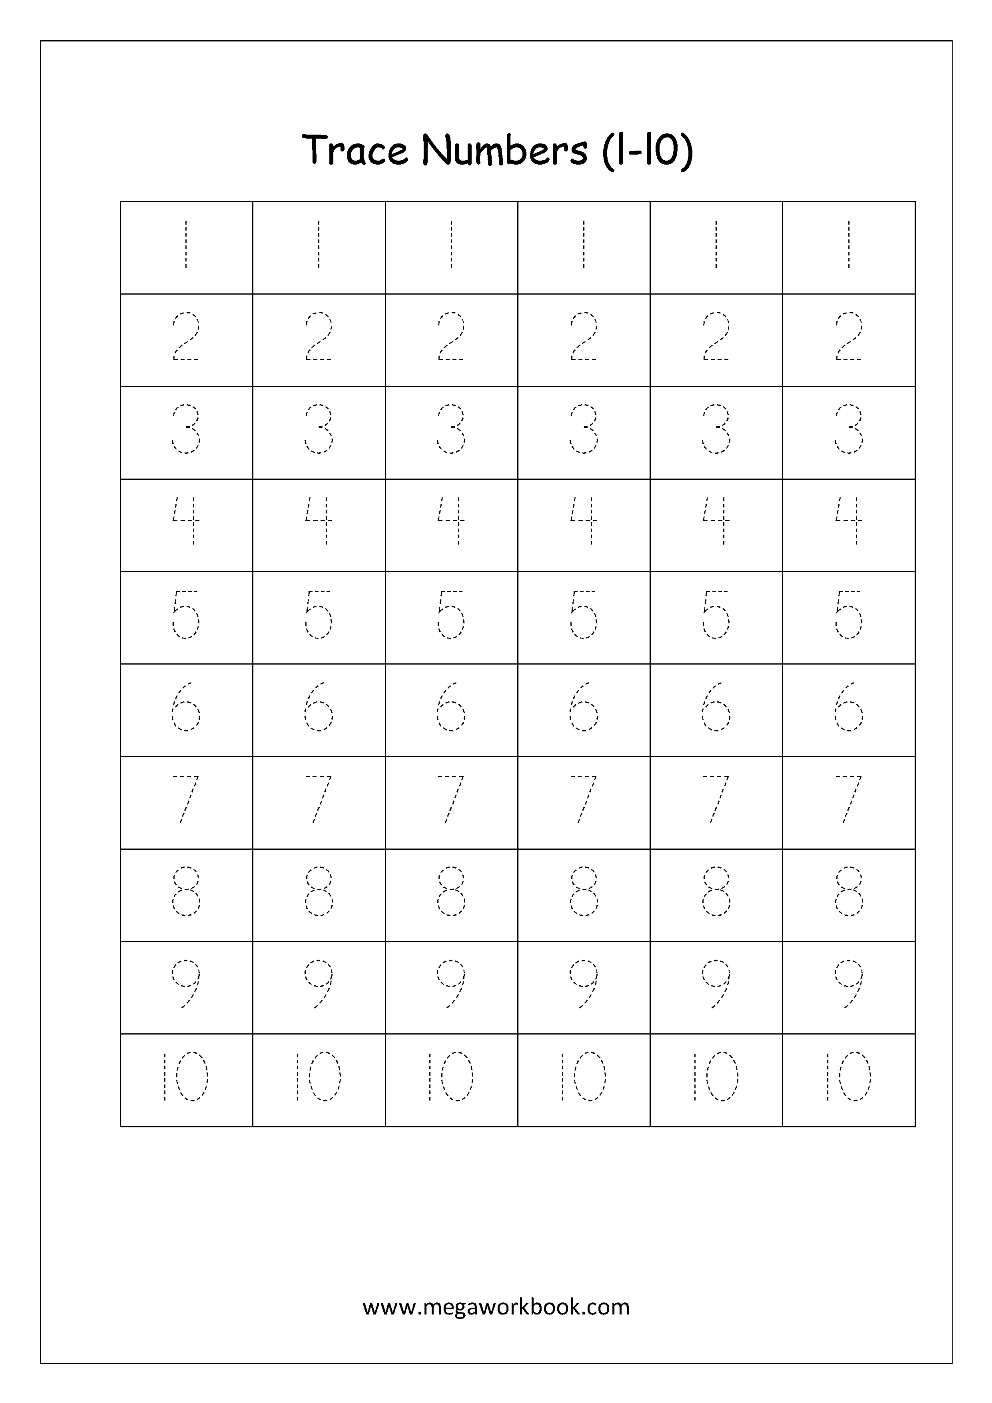 Free Math Worksheets - Number Tracing and Writing - MegaWorkbook